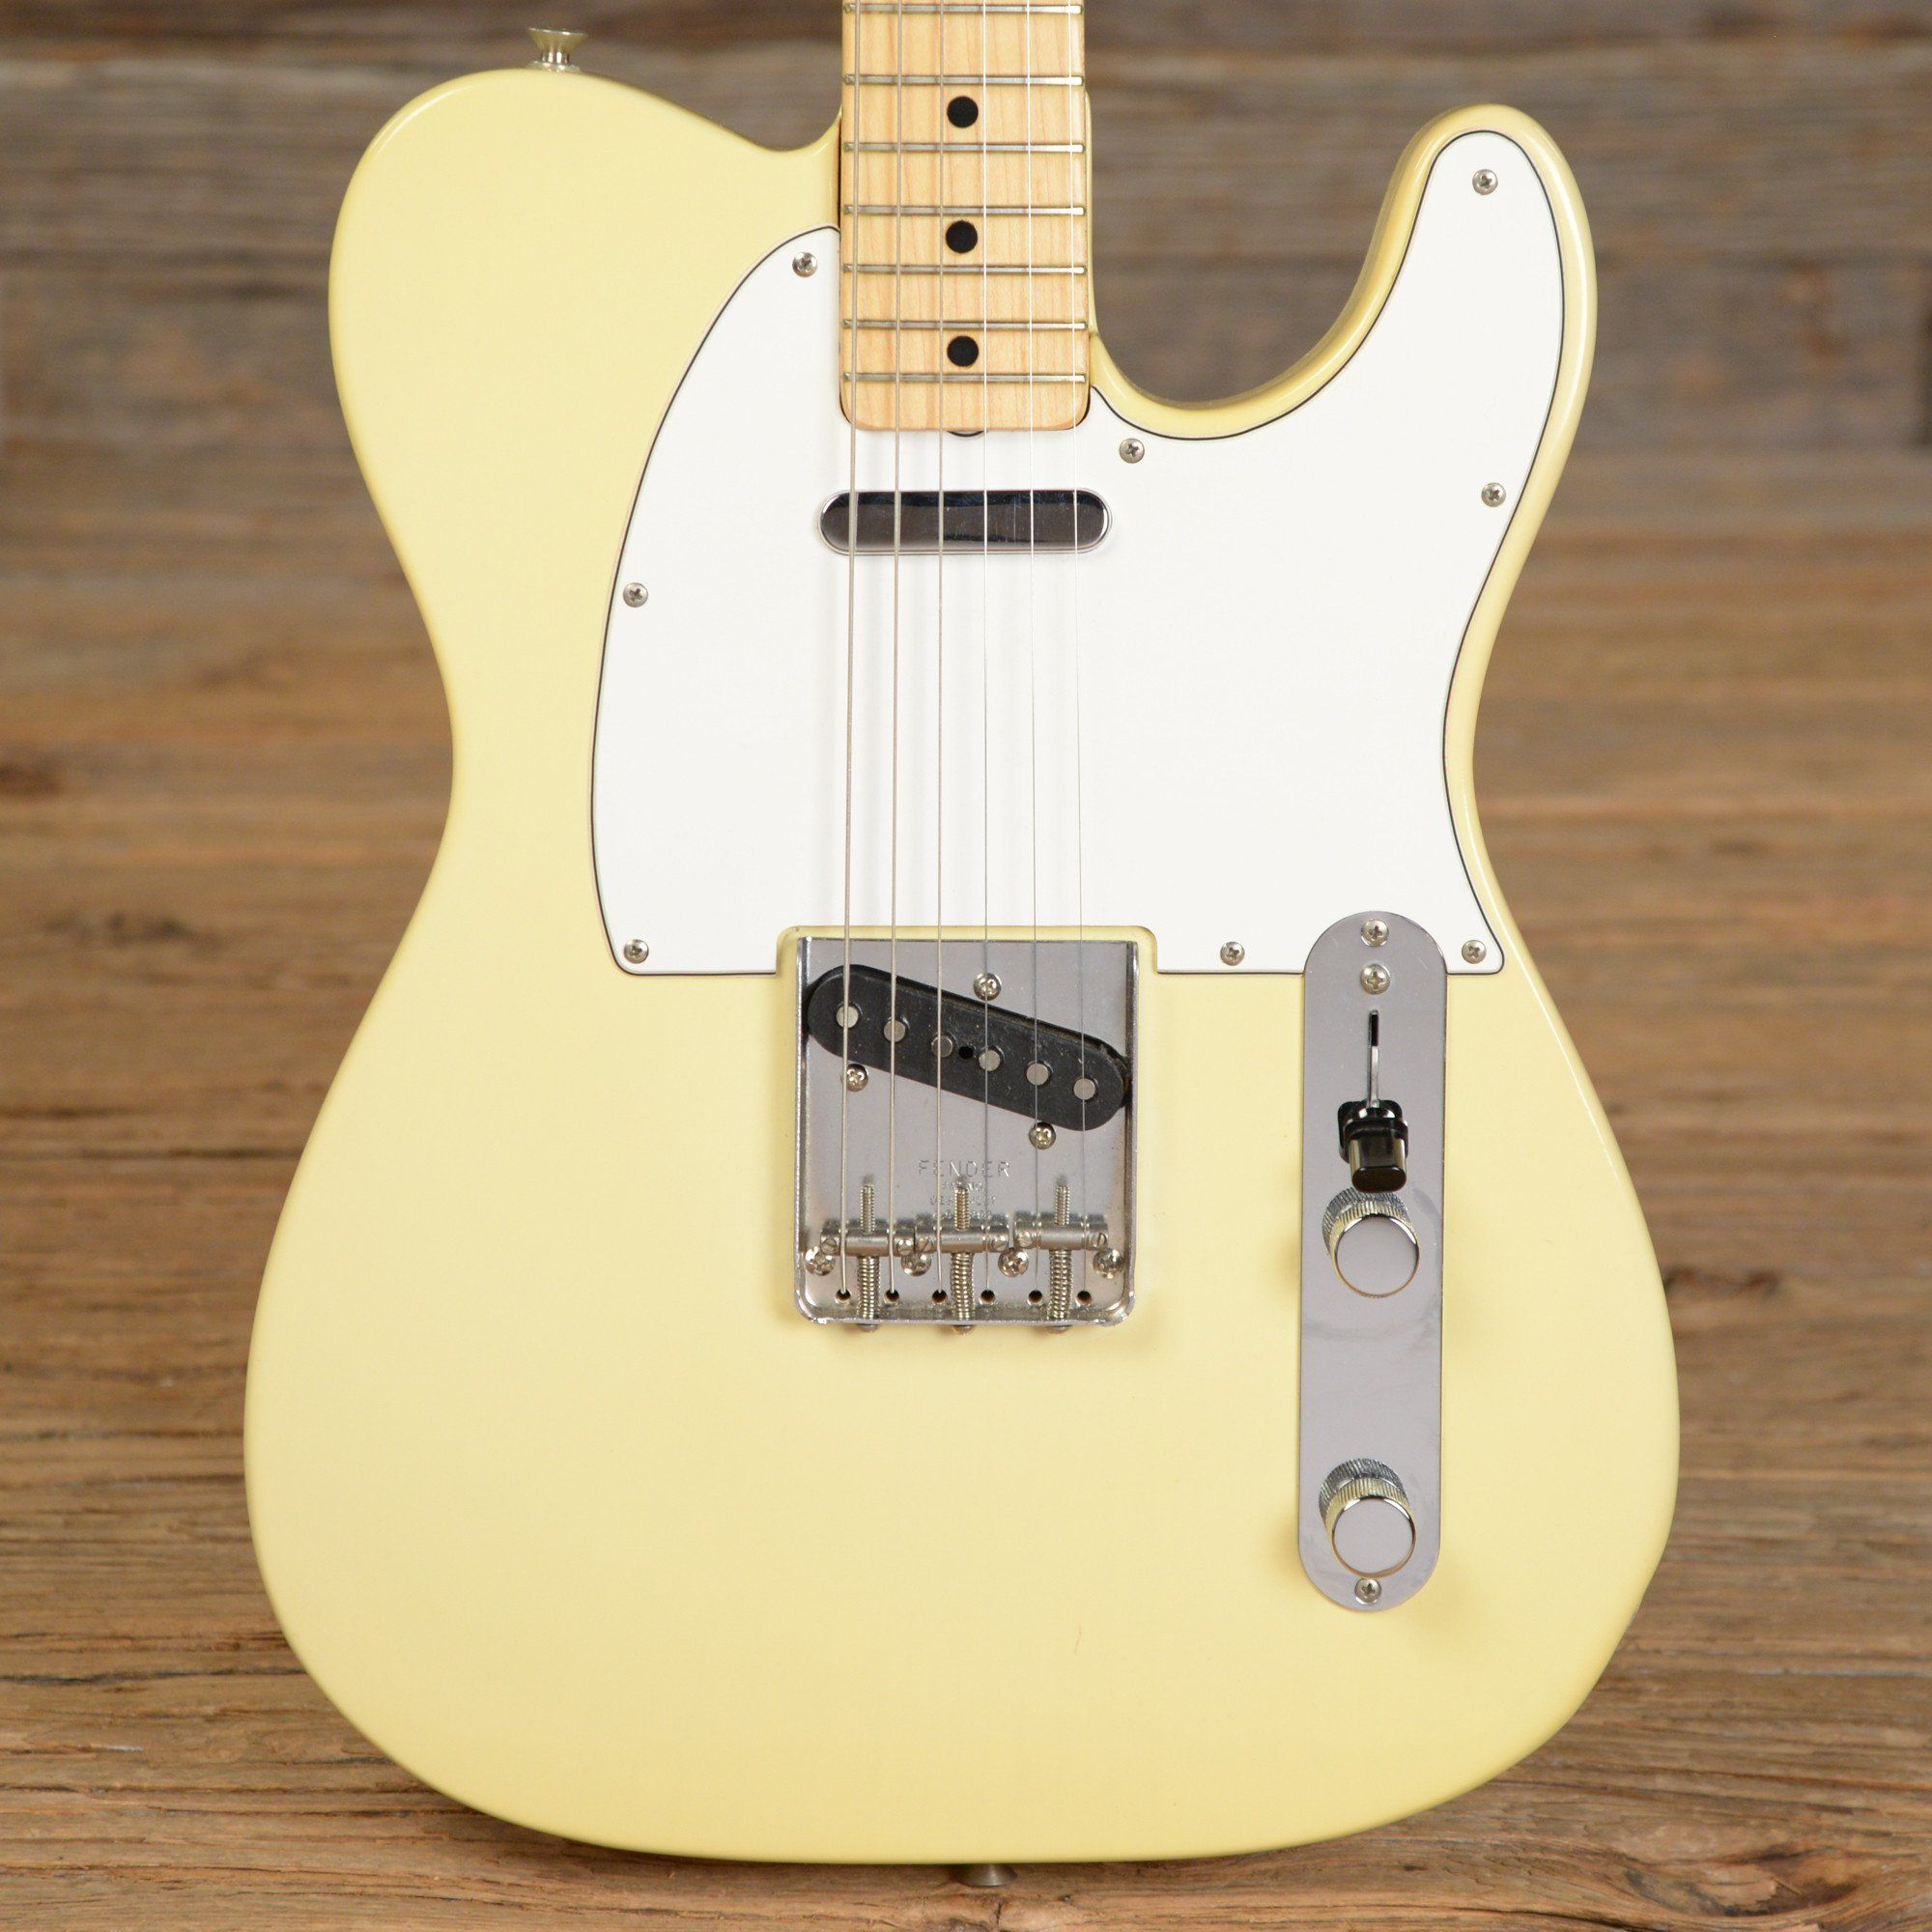 We and sell new used and vintage electric guitars every day